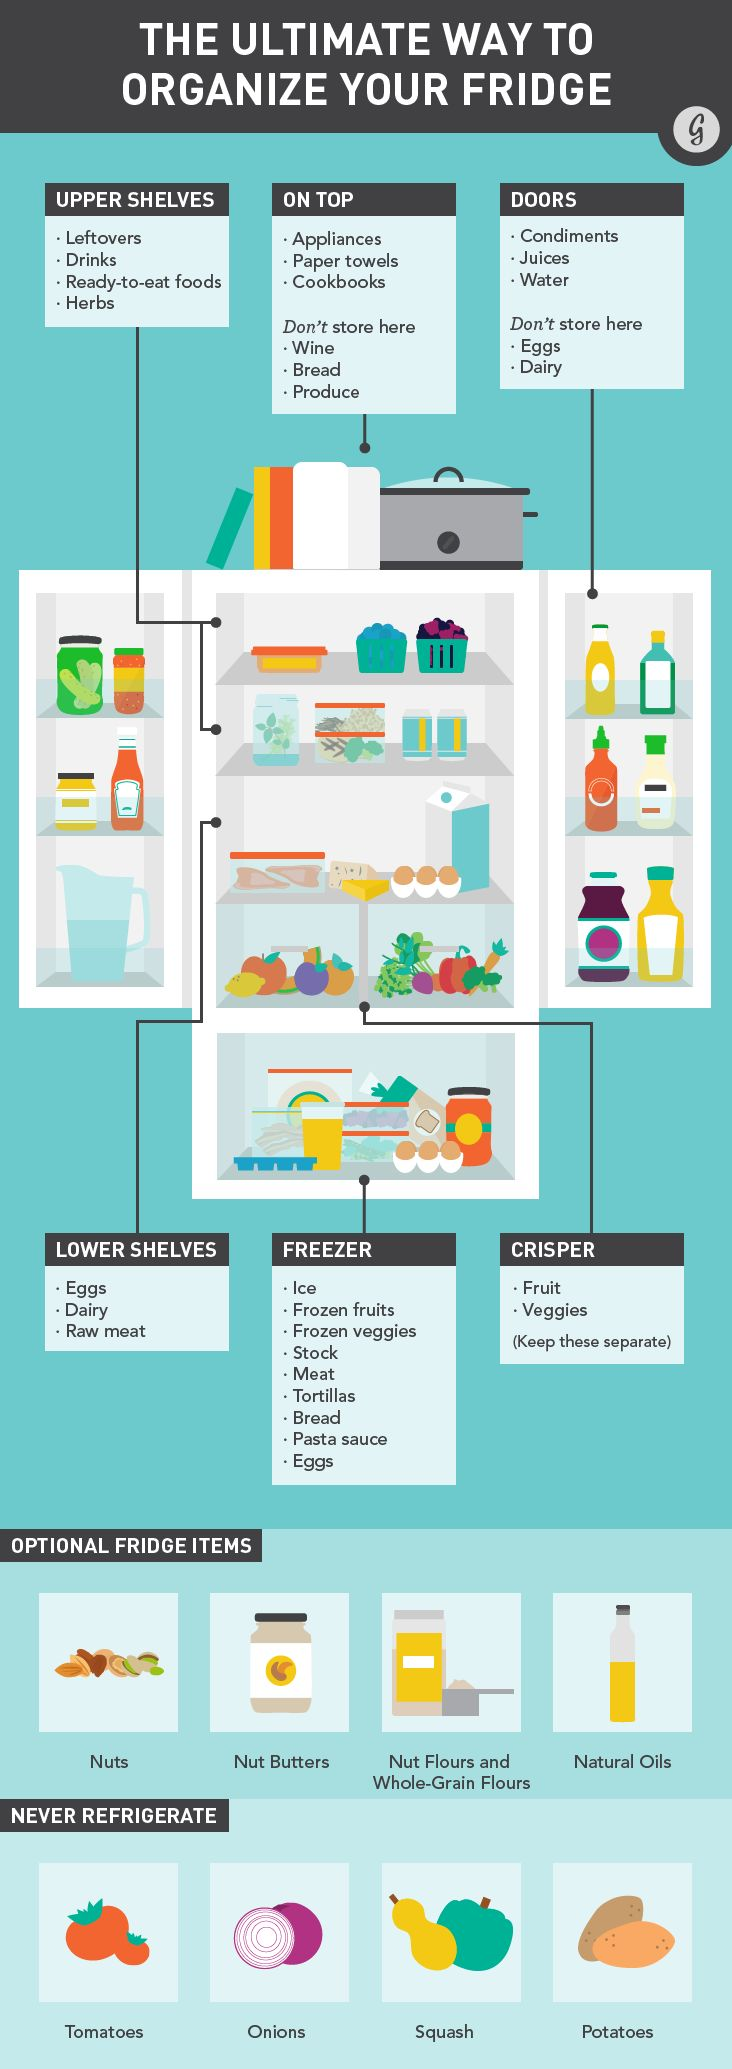 The Ultimate Way to Organize Your Fridge - wait, who the hell puts produce or bread or wine on top of their fridge? Seems like a recipe for an injury or food going bad!